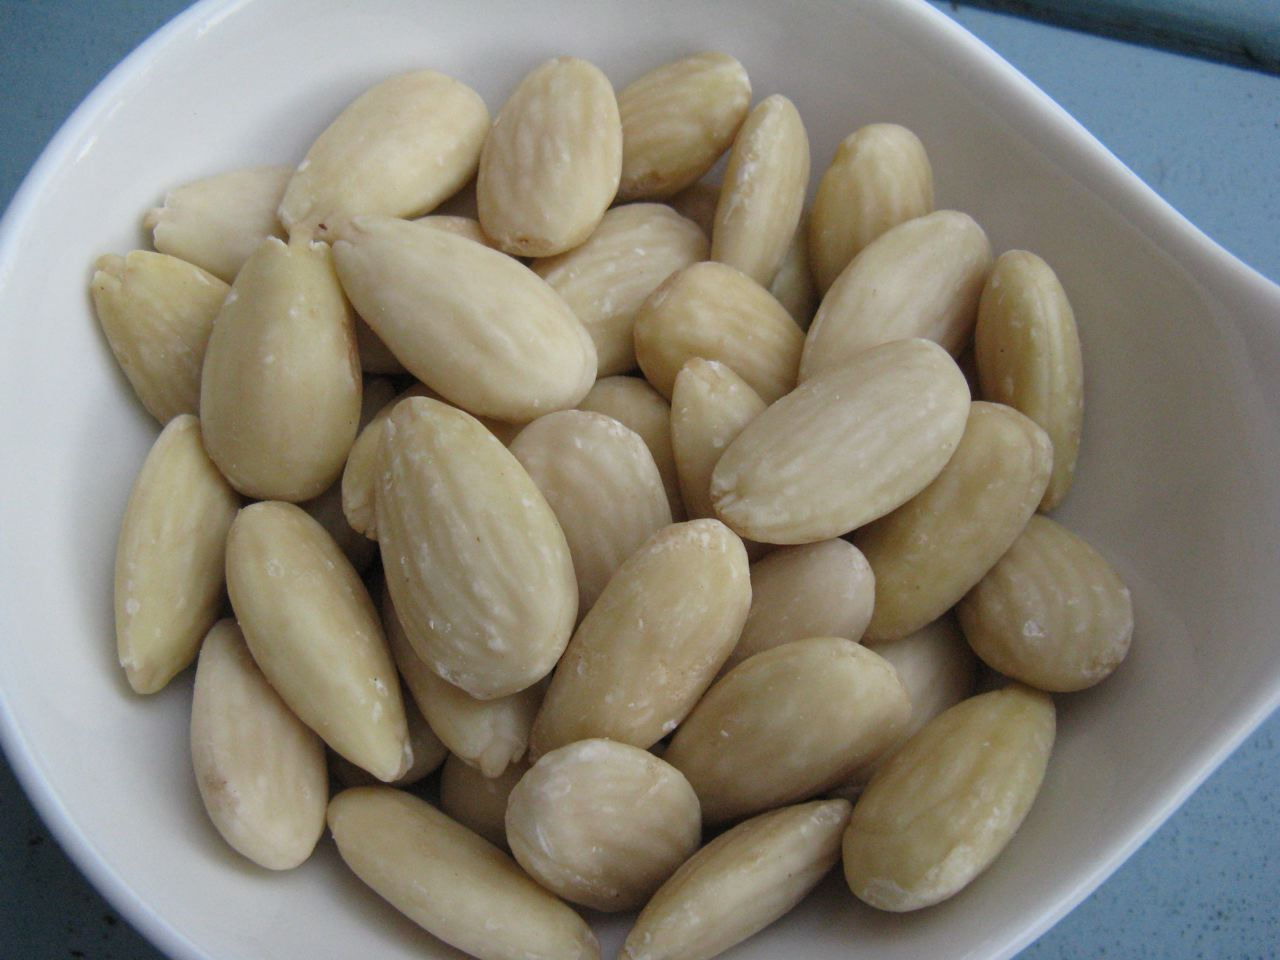 File:blanched almonds.jpg wikimedia commons